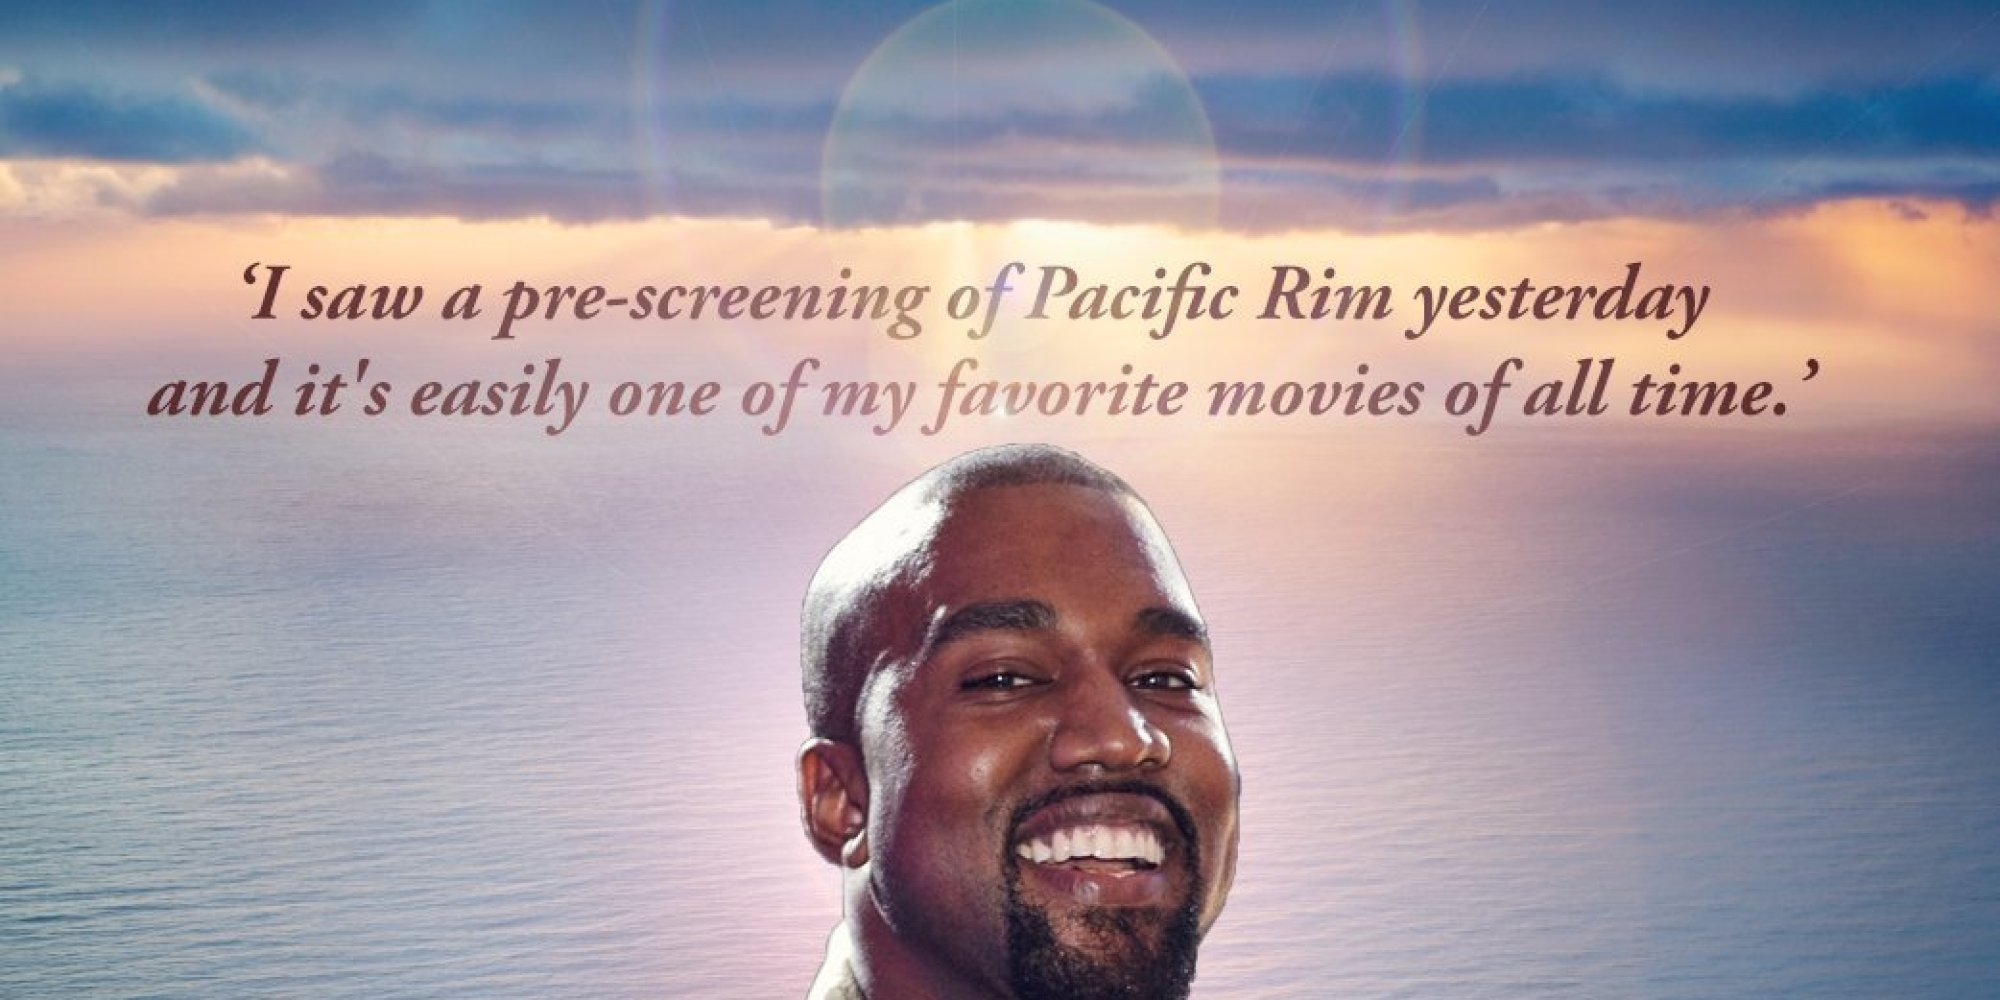 kanye west tweets as inspirational quotes will give you a